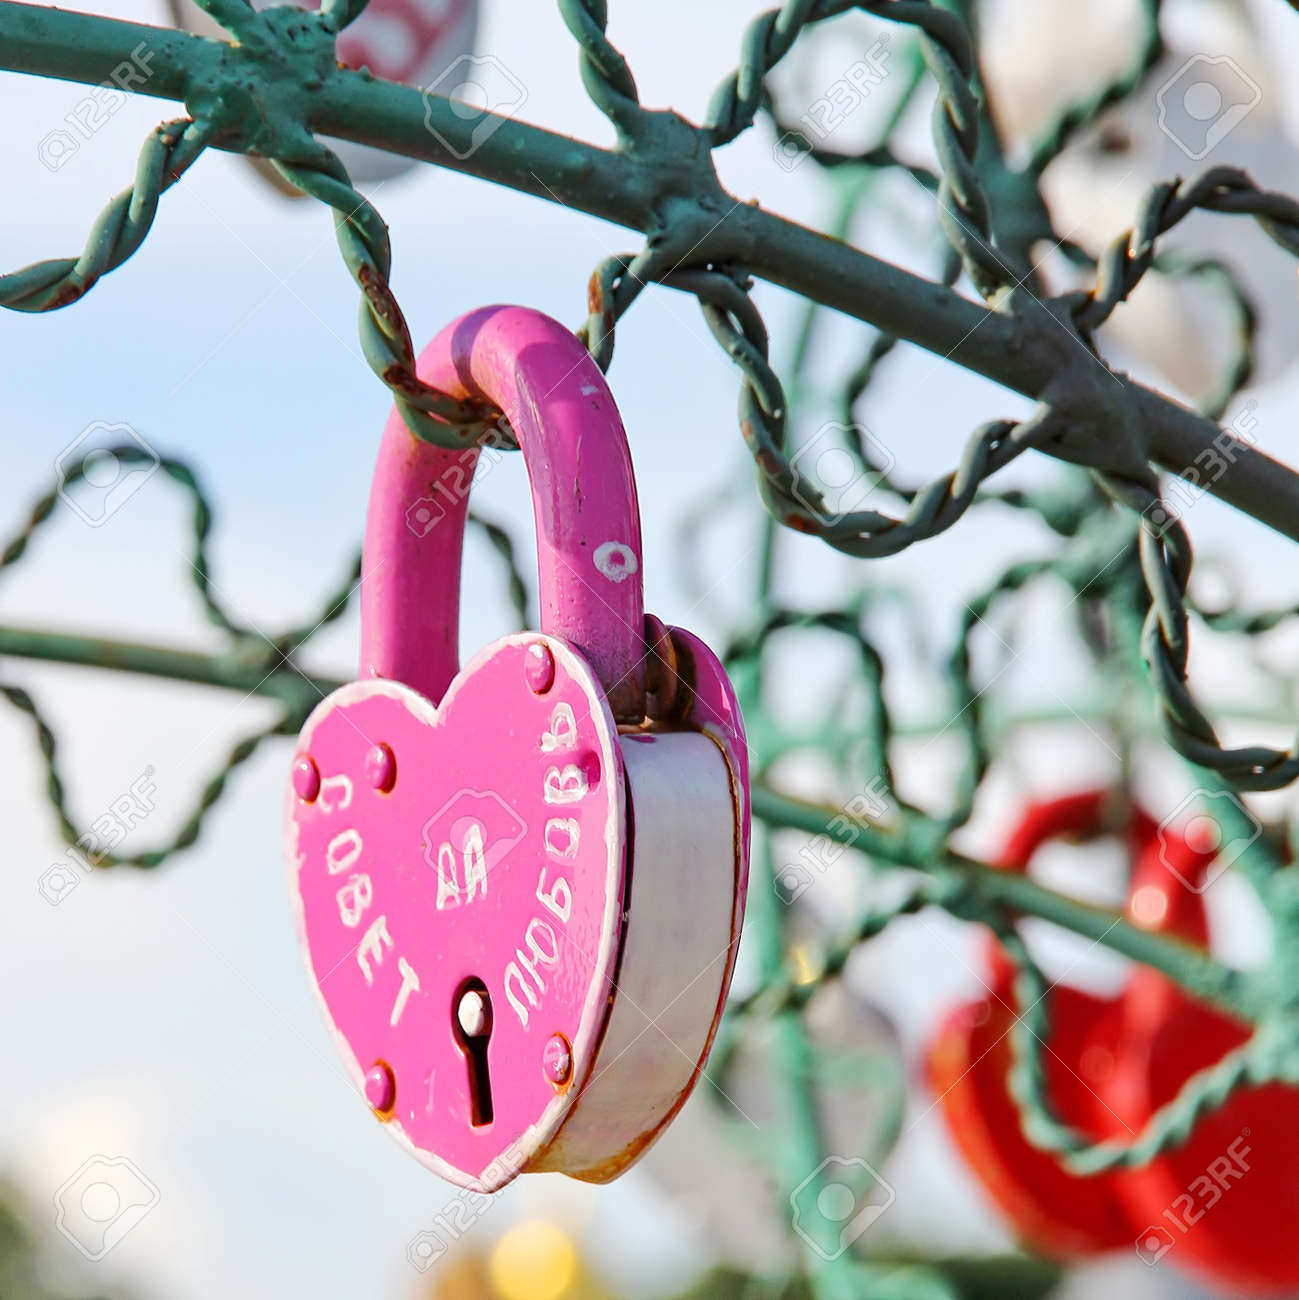 Tree of Love, Luzhkov Bridge  Moscow, Russia  Padlocks in the shape of a heart - a symbol of eternal love and union  Stock Photo - 21838087